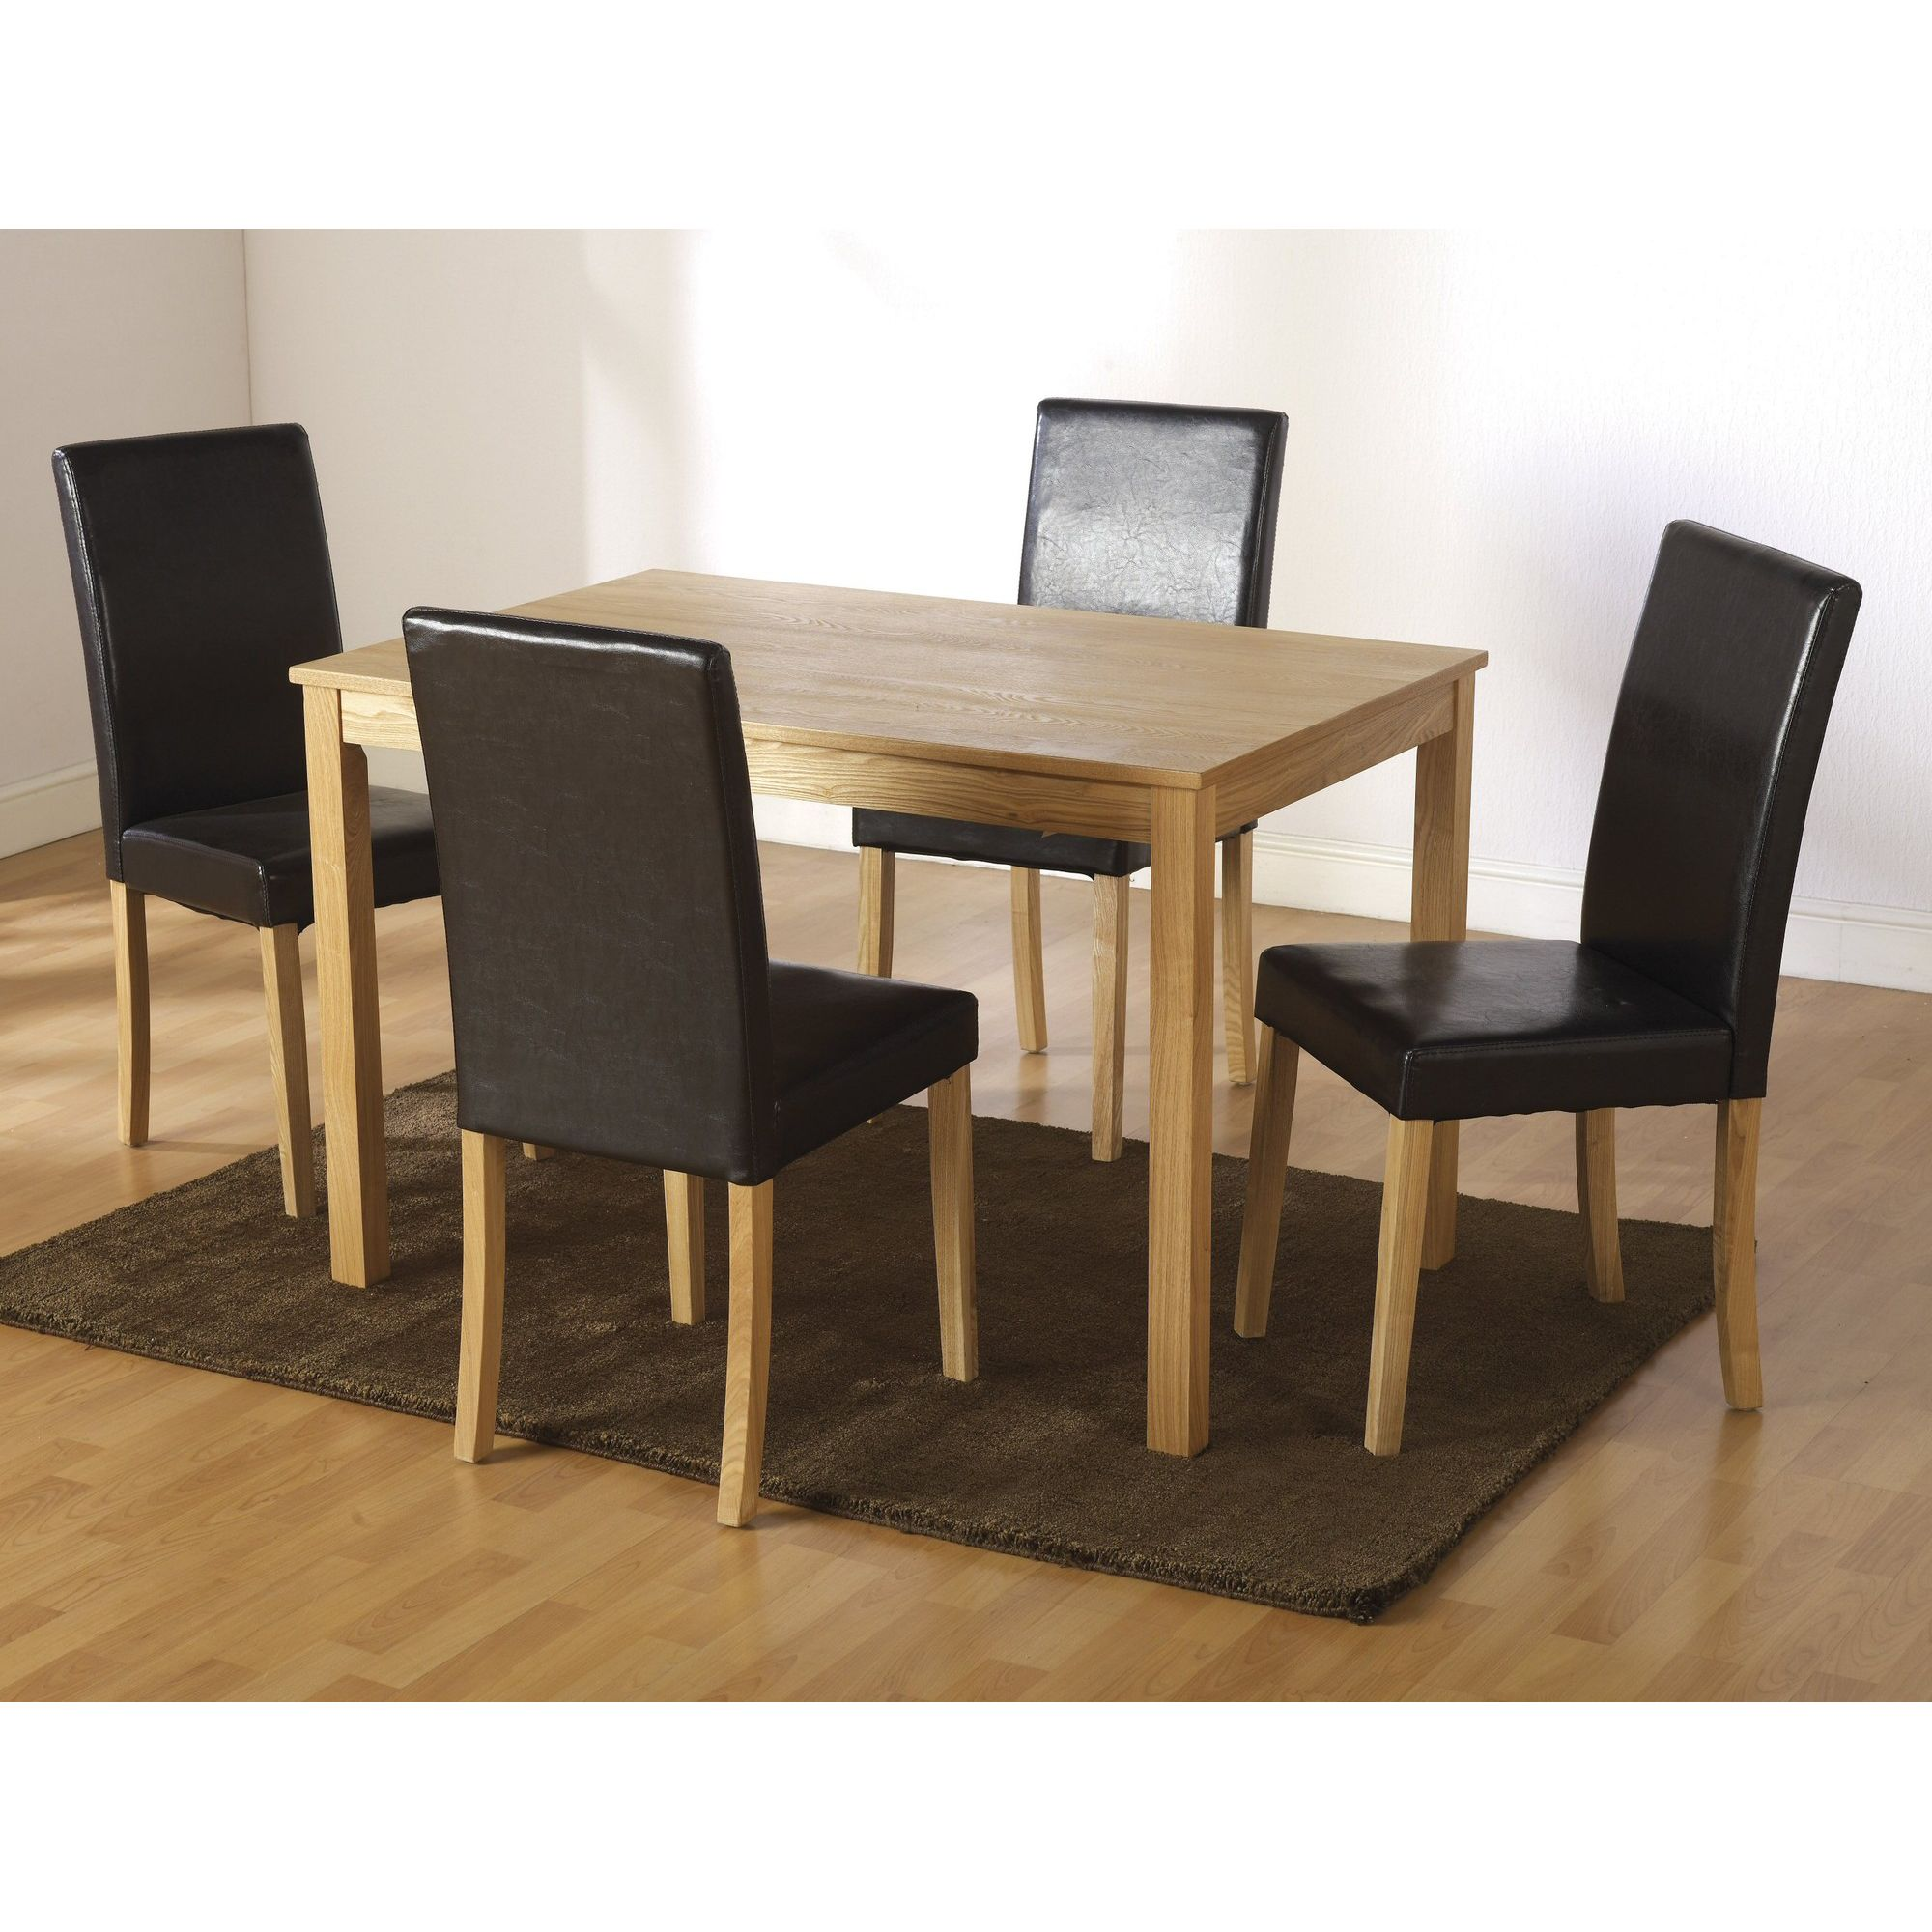 Home Essence Albany 5 Piece Ash Dining Set - Brown at Tesco Direct